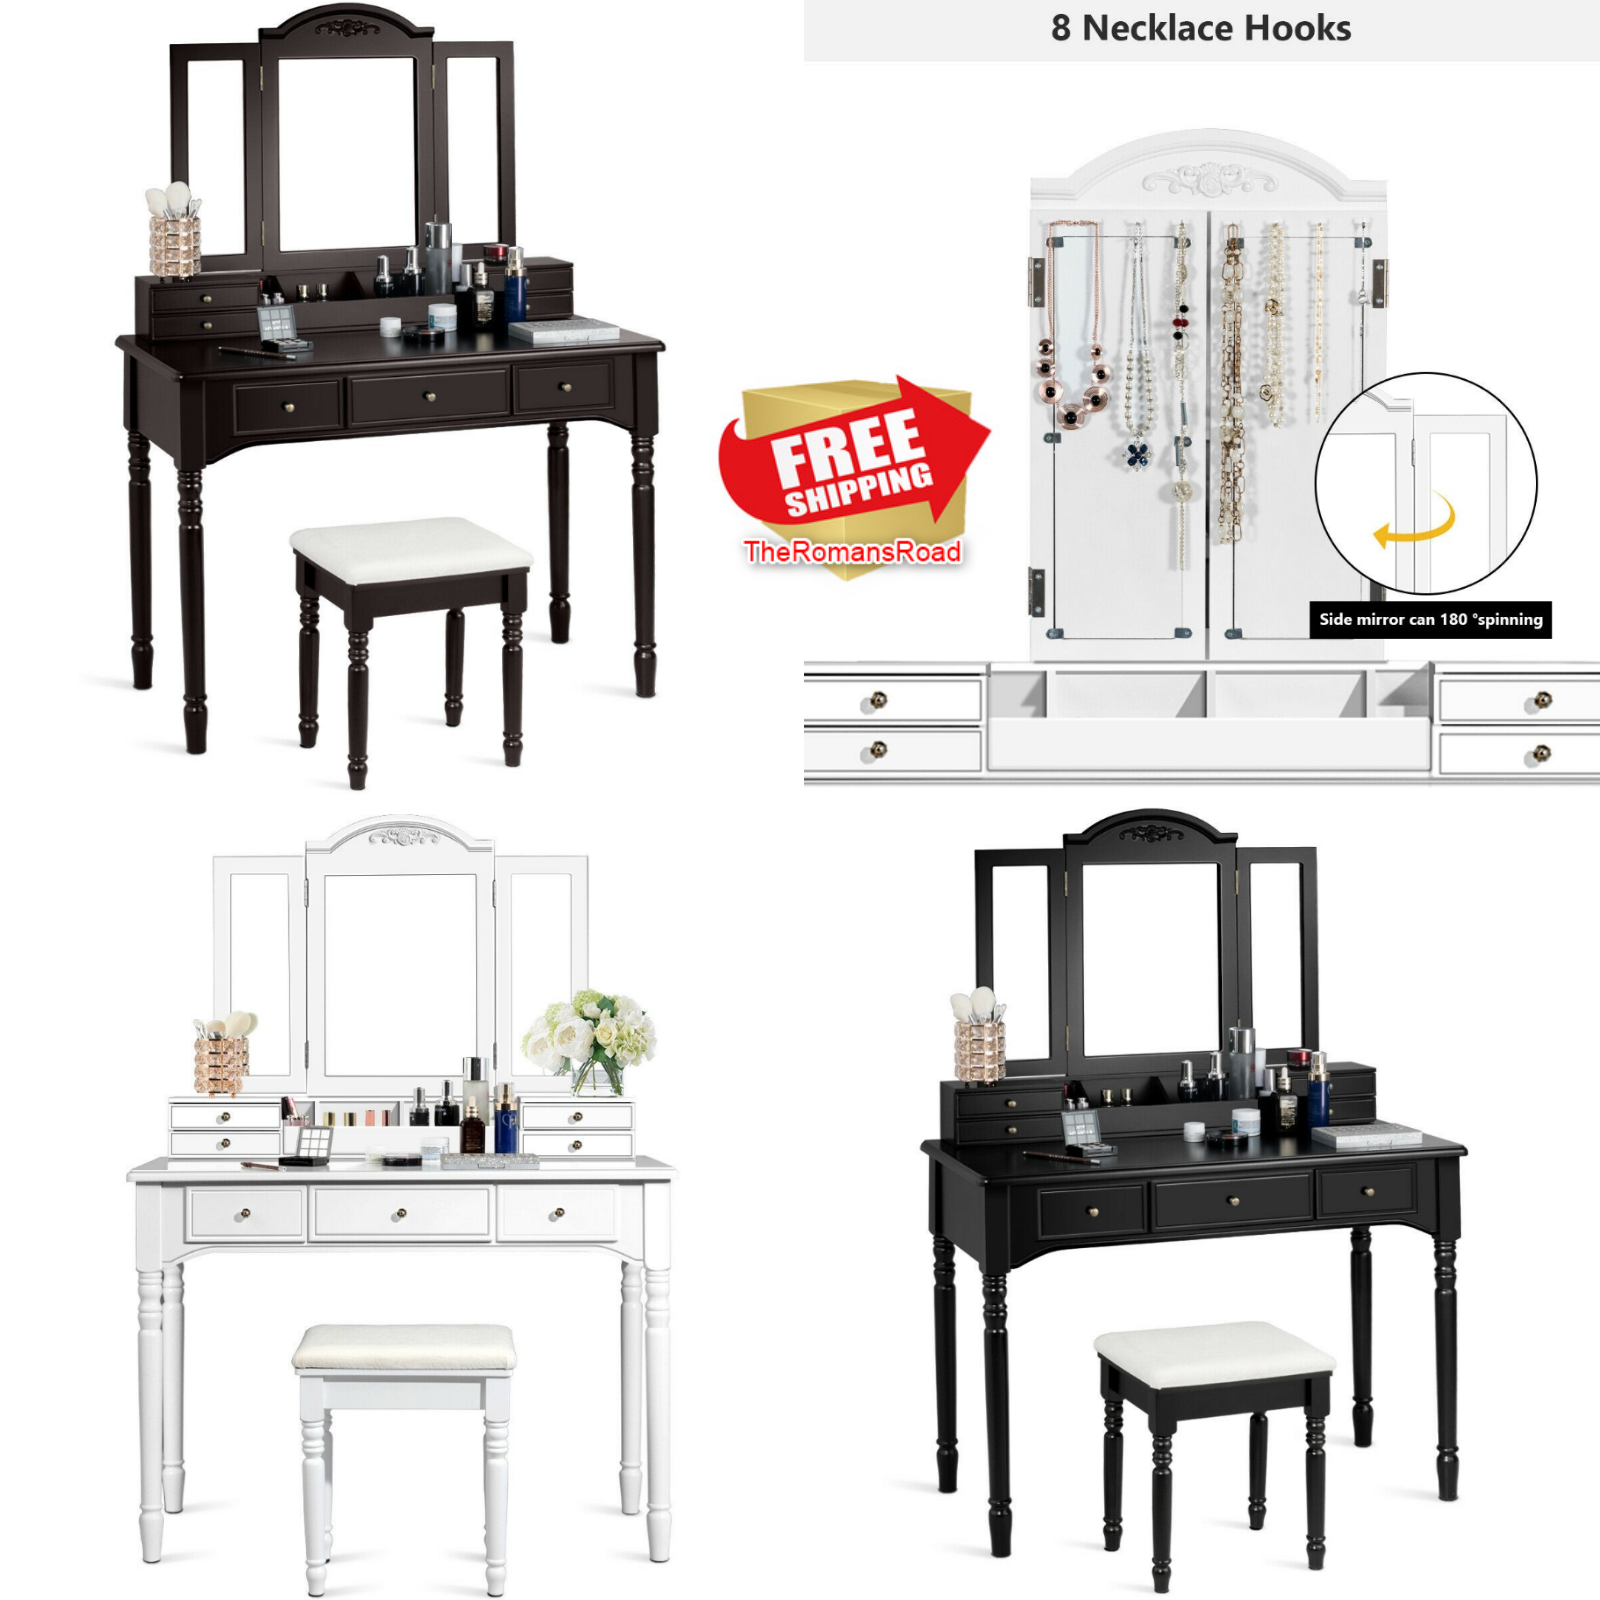 Details About Rotating Mirror Vanity Tri Folding Necklace Hooked Dressing Table Set 7 Drawers